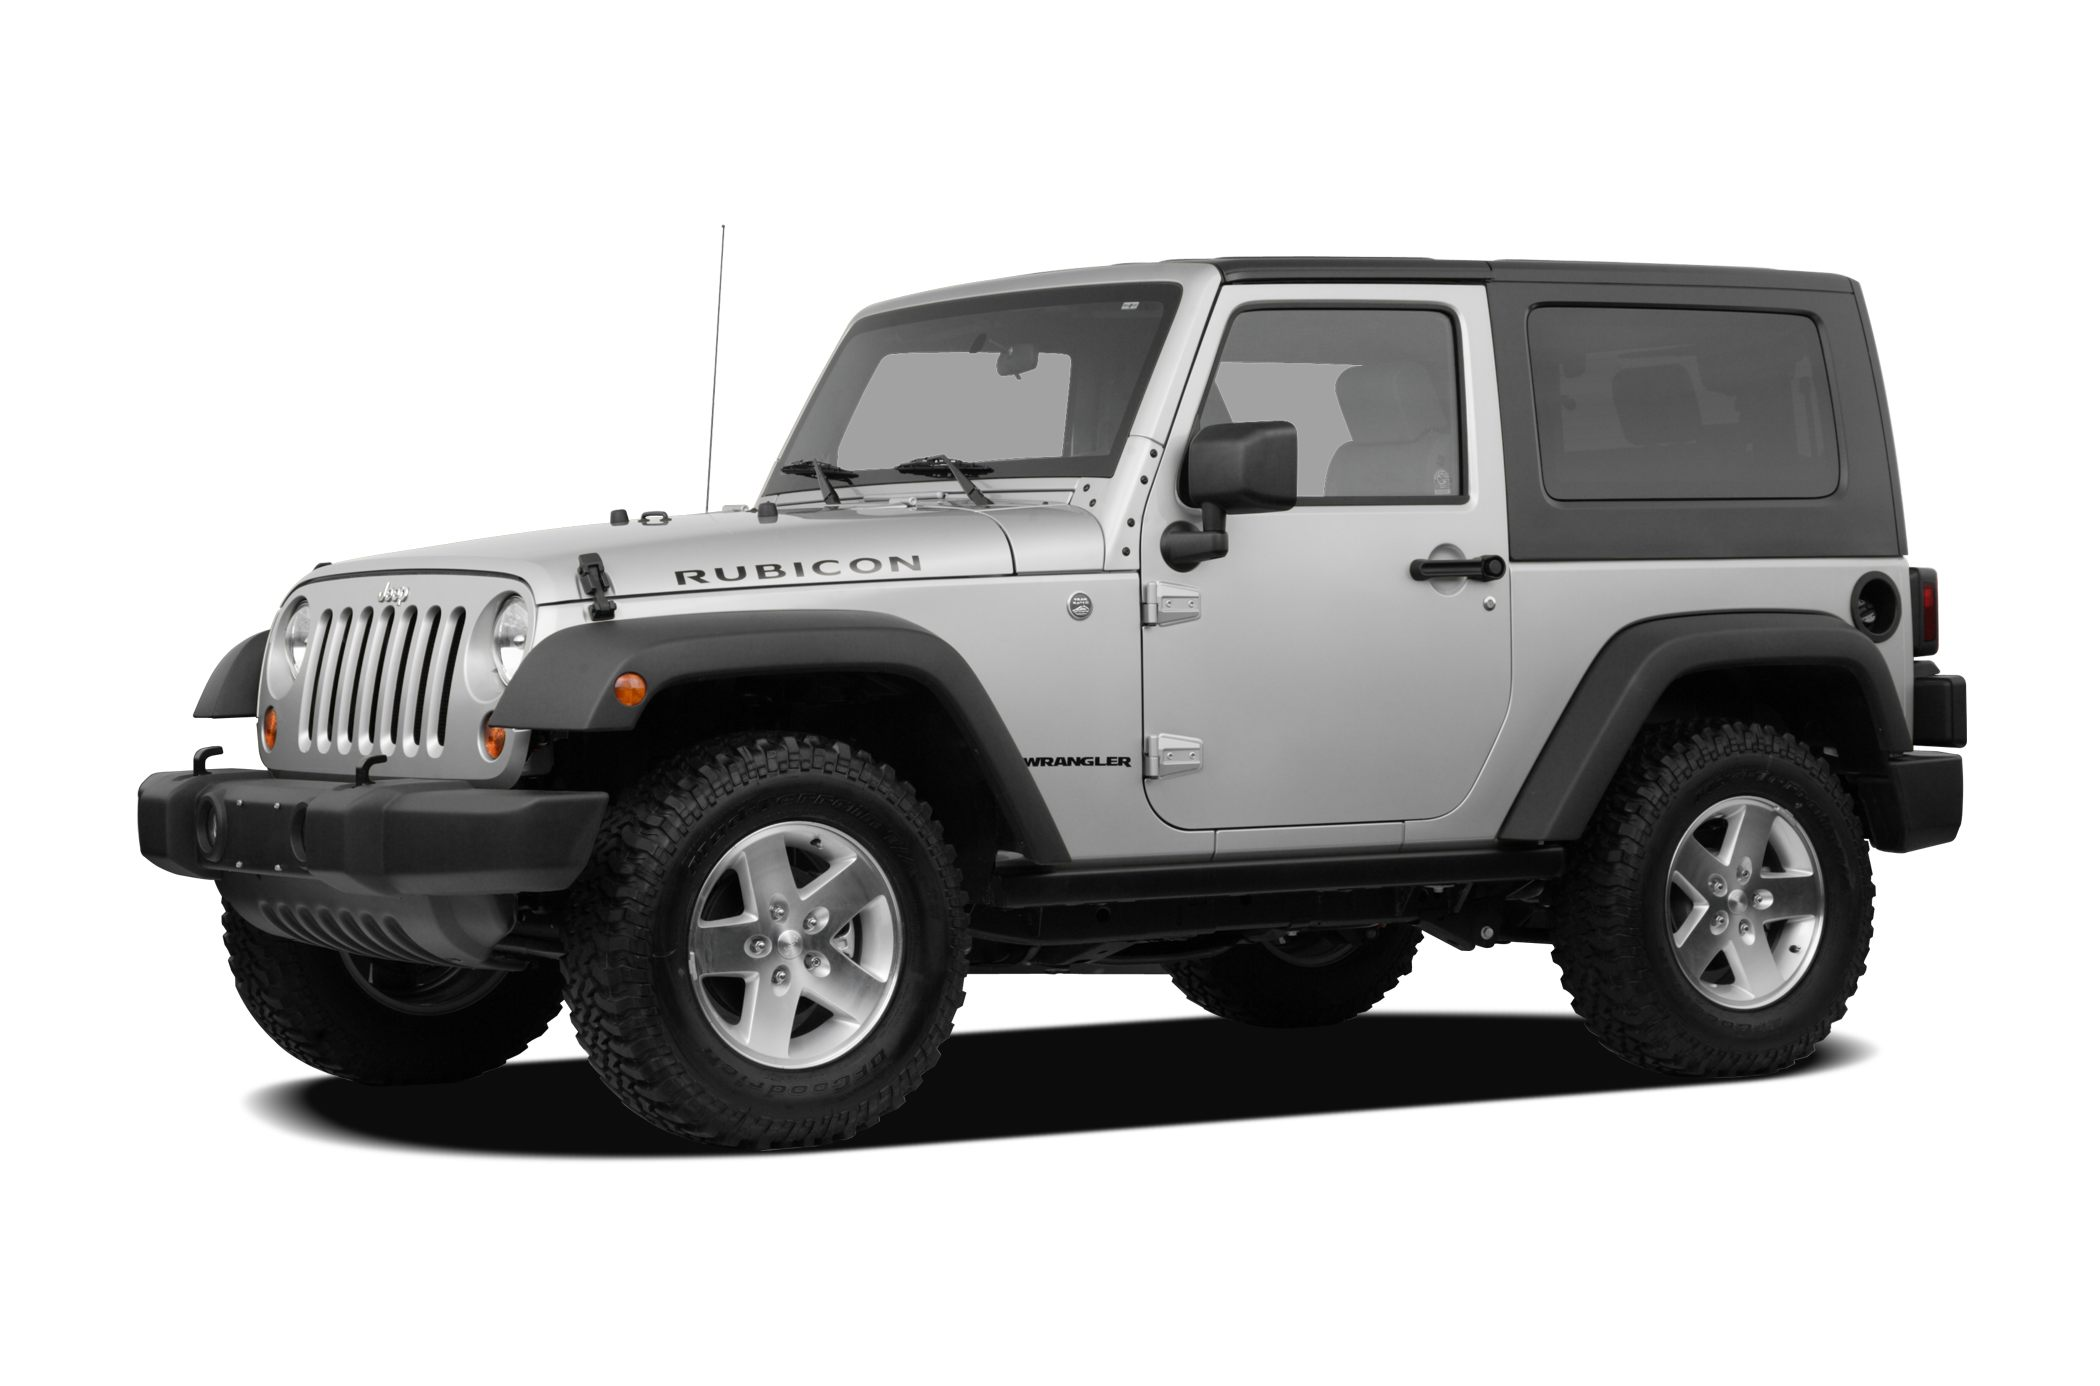 2010 Jeep Wrangler Sport THIS VEHICLE COMES WITH OUR BEST PRICE GUARANTEE FIND A BETTER ON A SIM